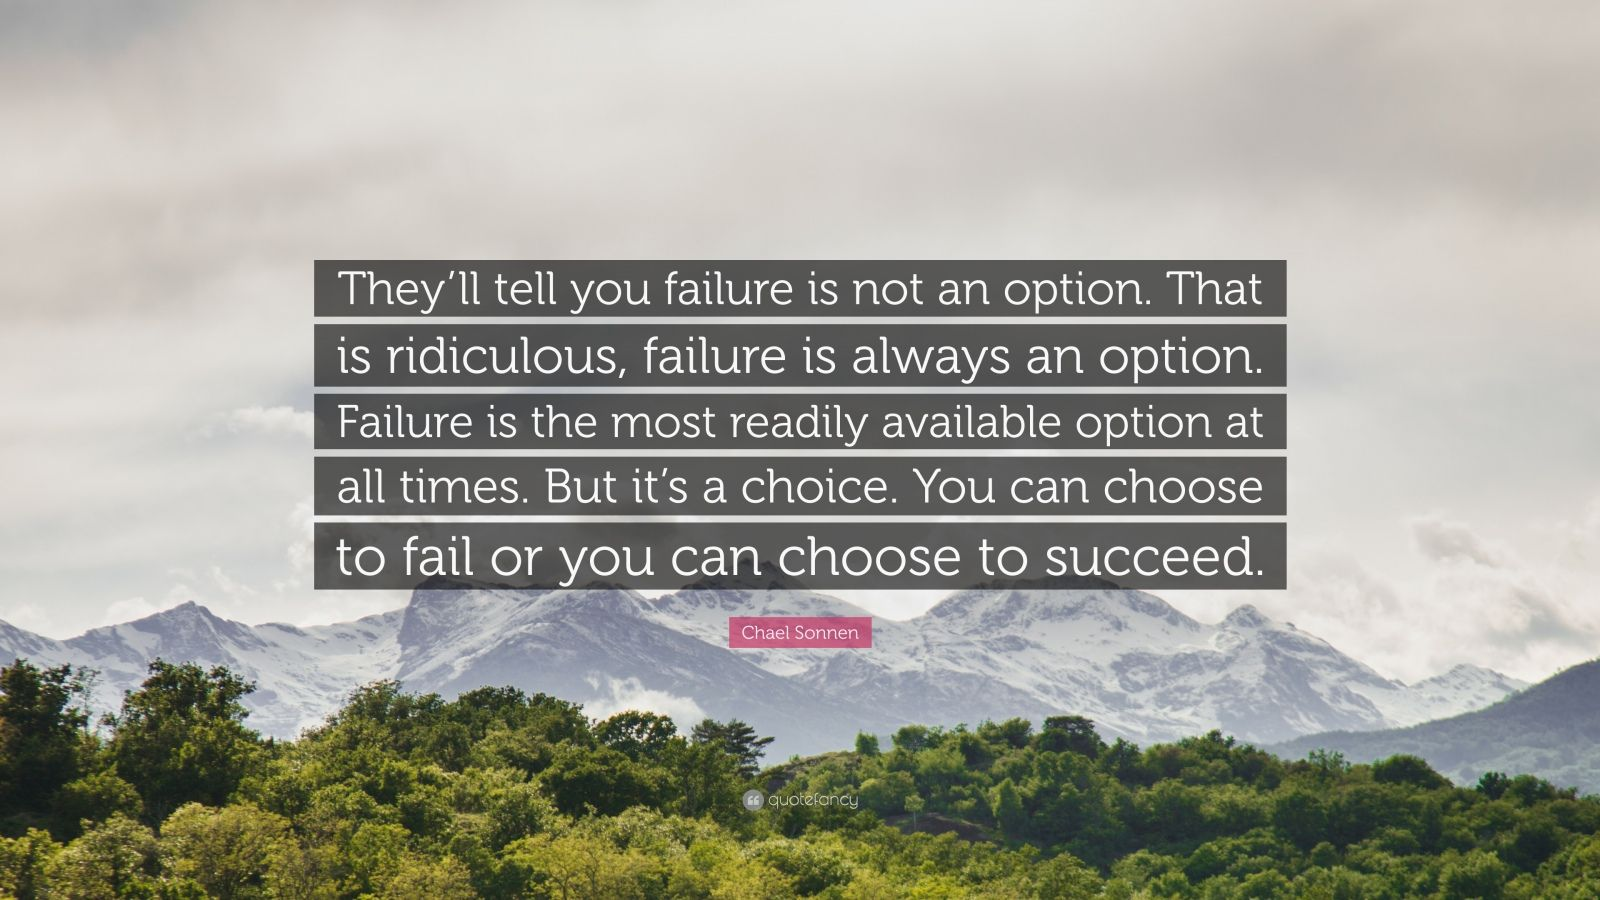 """Chael Sonnen Quote: """"They'll tell you failure is not an option. That is ridiculous, failure is always an option. Failure is the most readily available option at all times. But it's a choice. You can choose to fail or you can choose to succeed."""""""